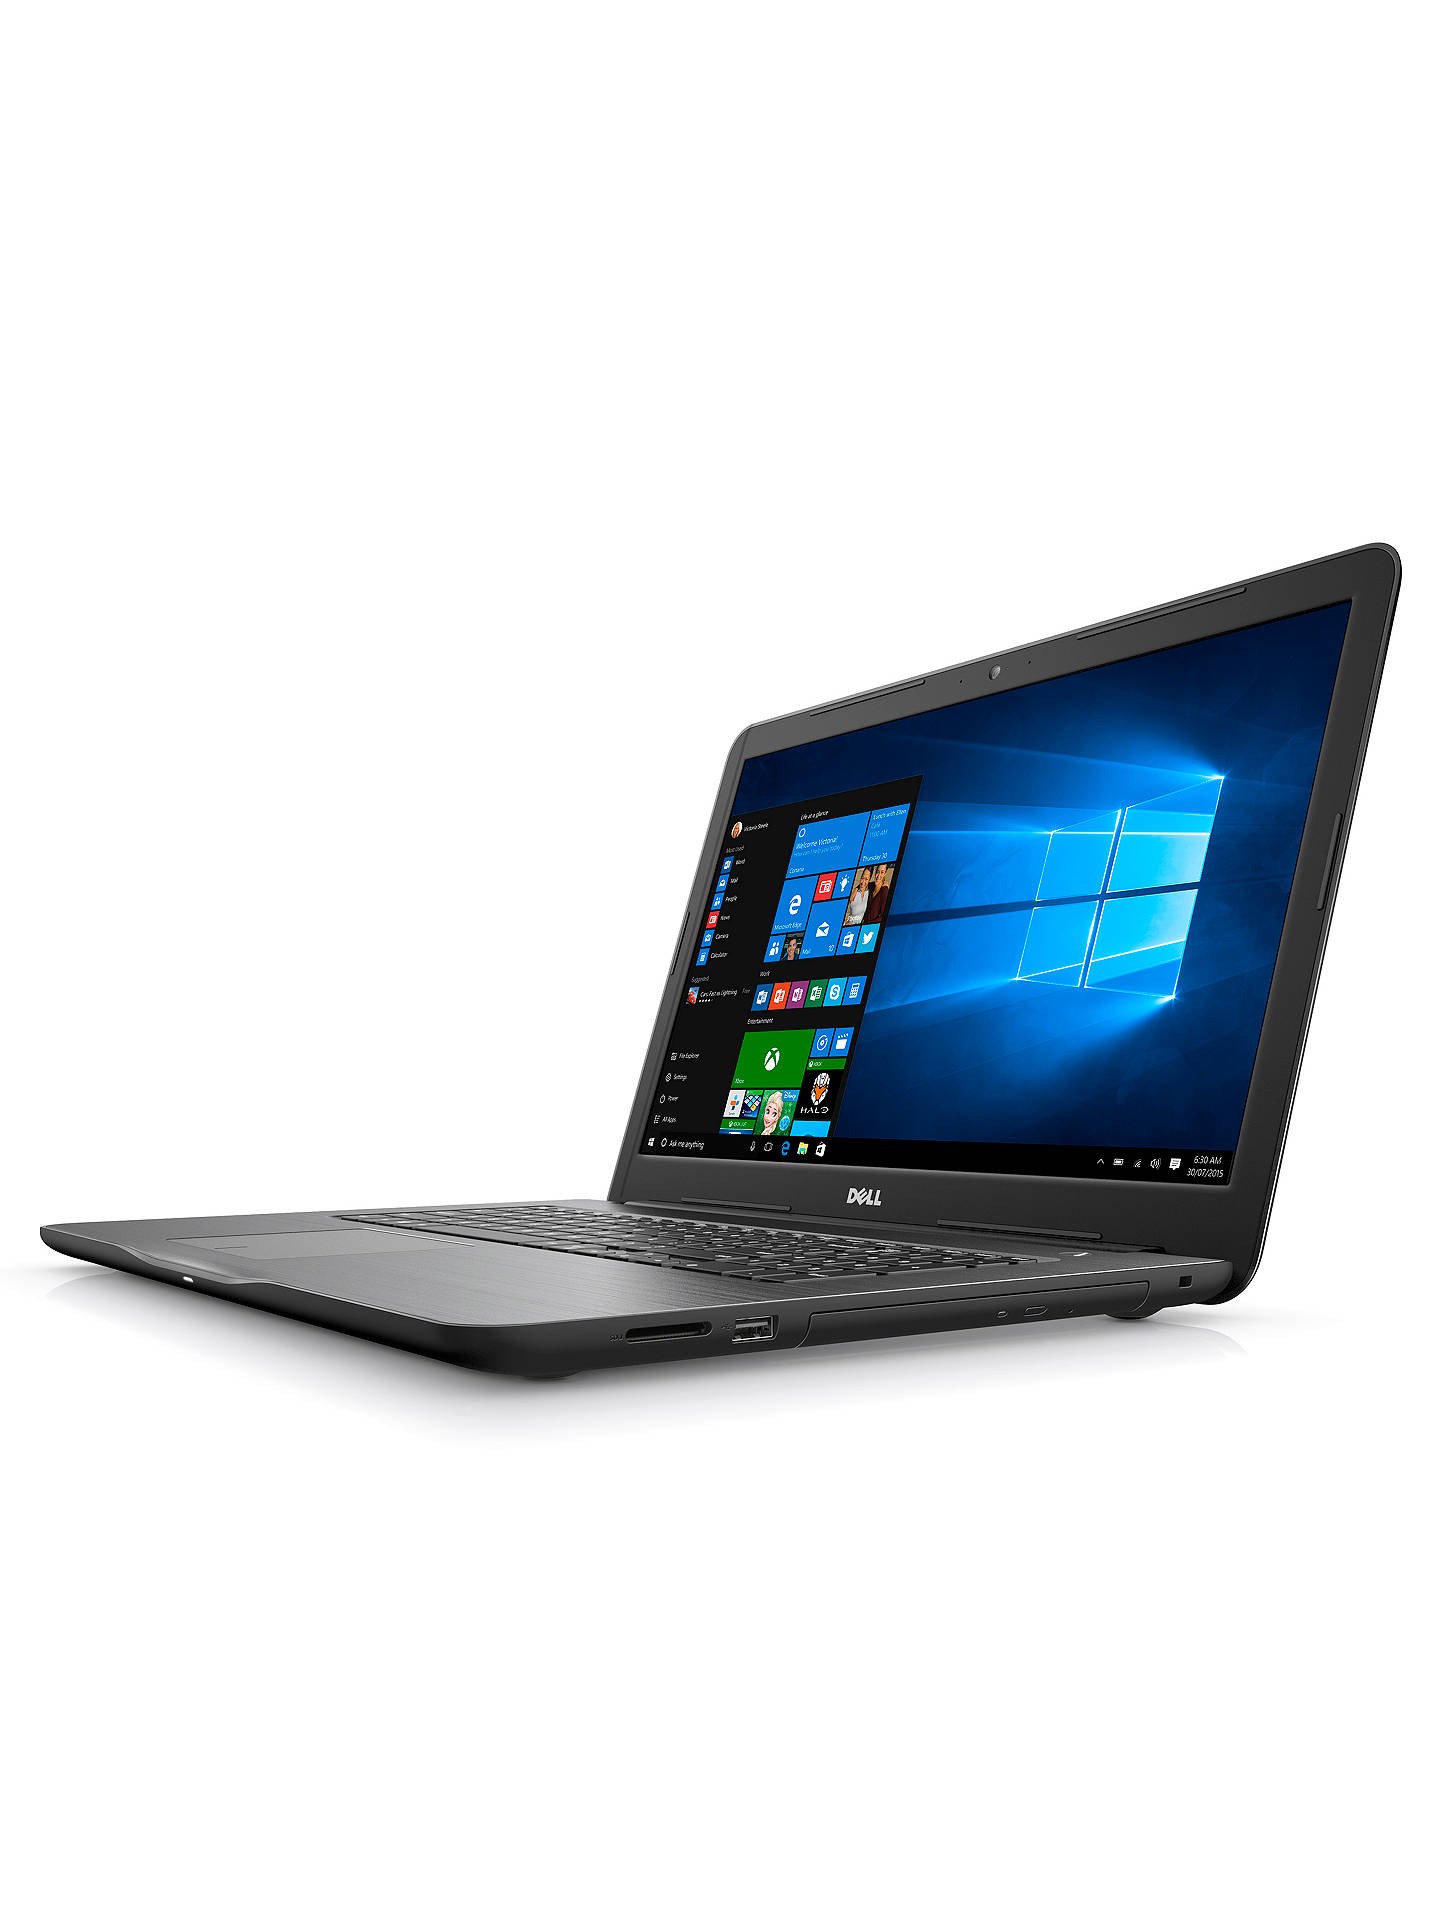 "Buy Dell Inspiron 17 5000 Series Laptop, Intel Core i7, 8GB RAM, 1TB, AMD Radeon R7, 17.3"" Full HD, Black Online at johnlewis.com"